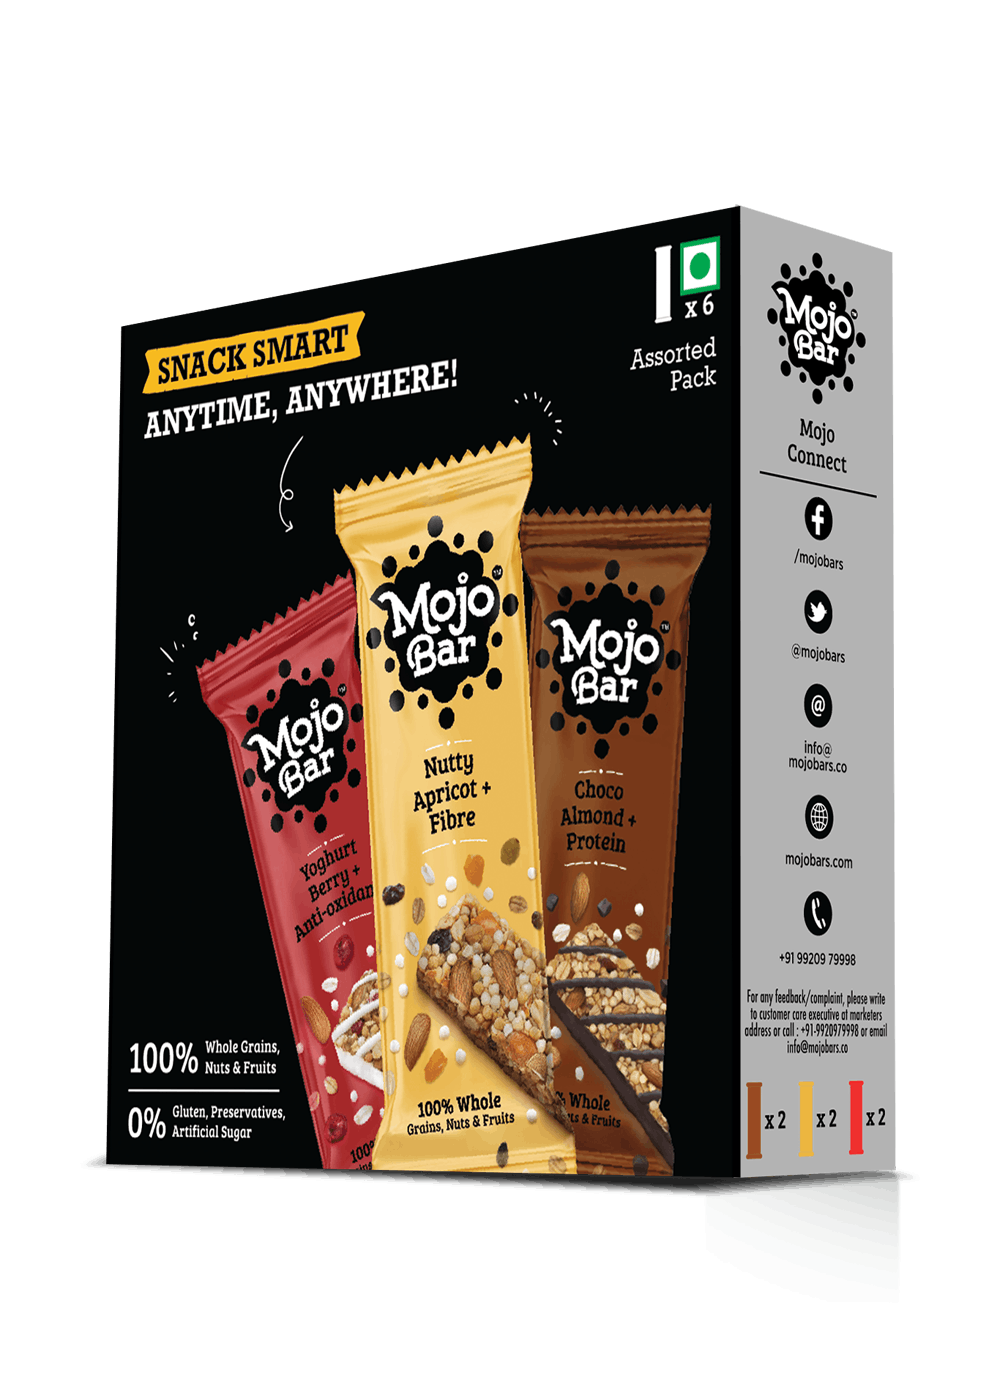 Choco Almond, Yoghurt Berry & Nutty Almond Variety Combo - Pack of 6